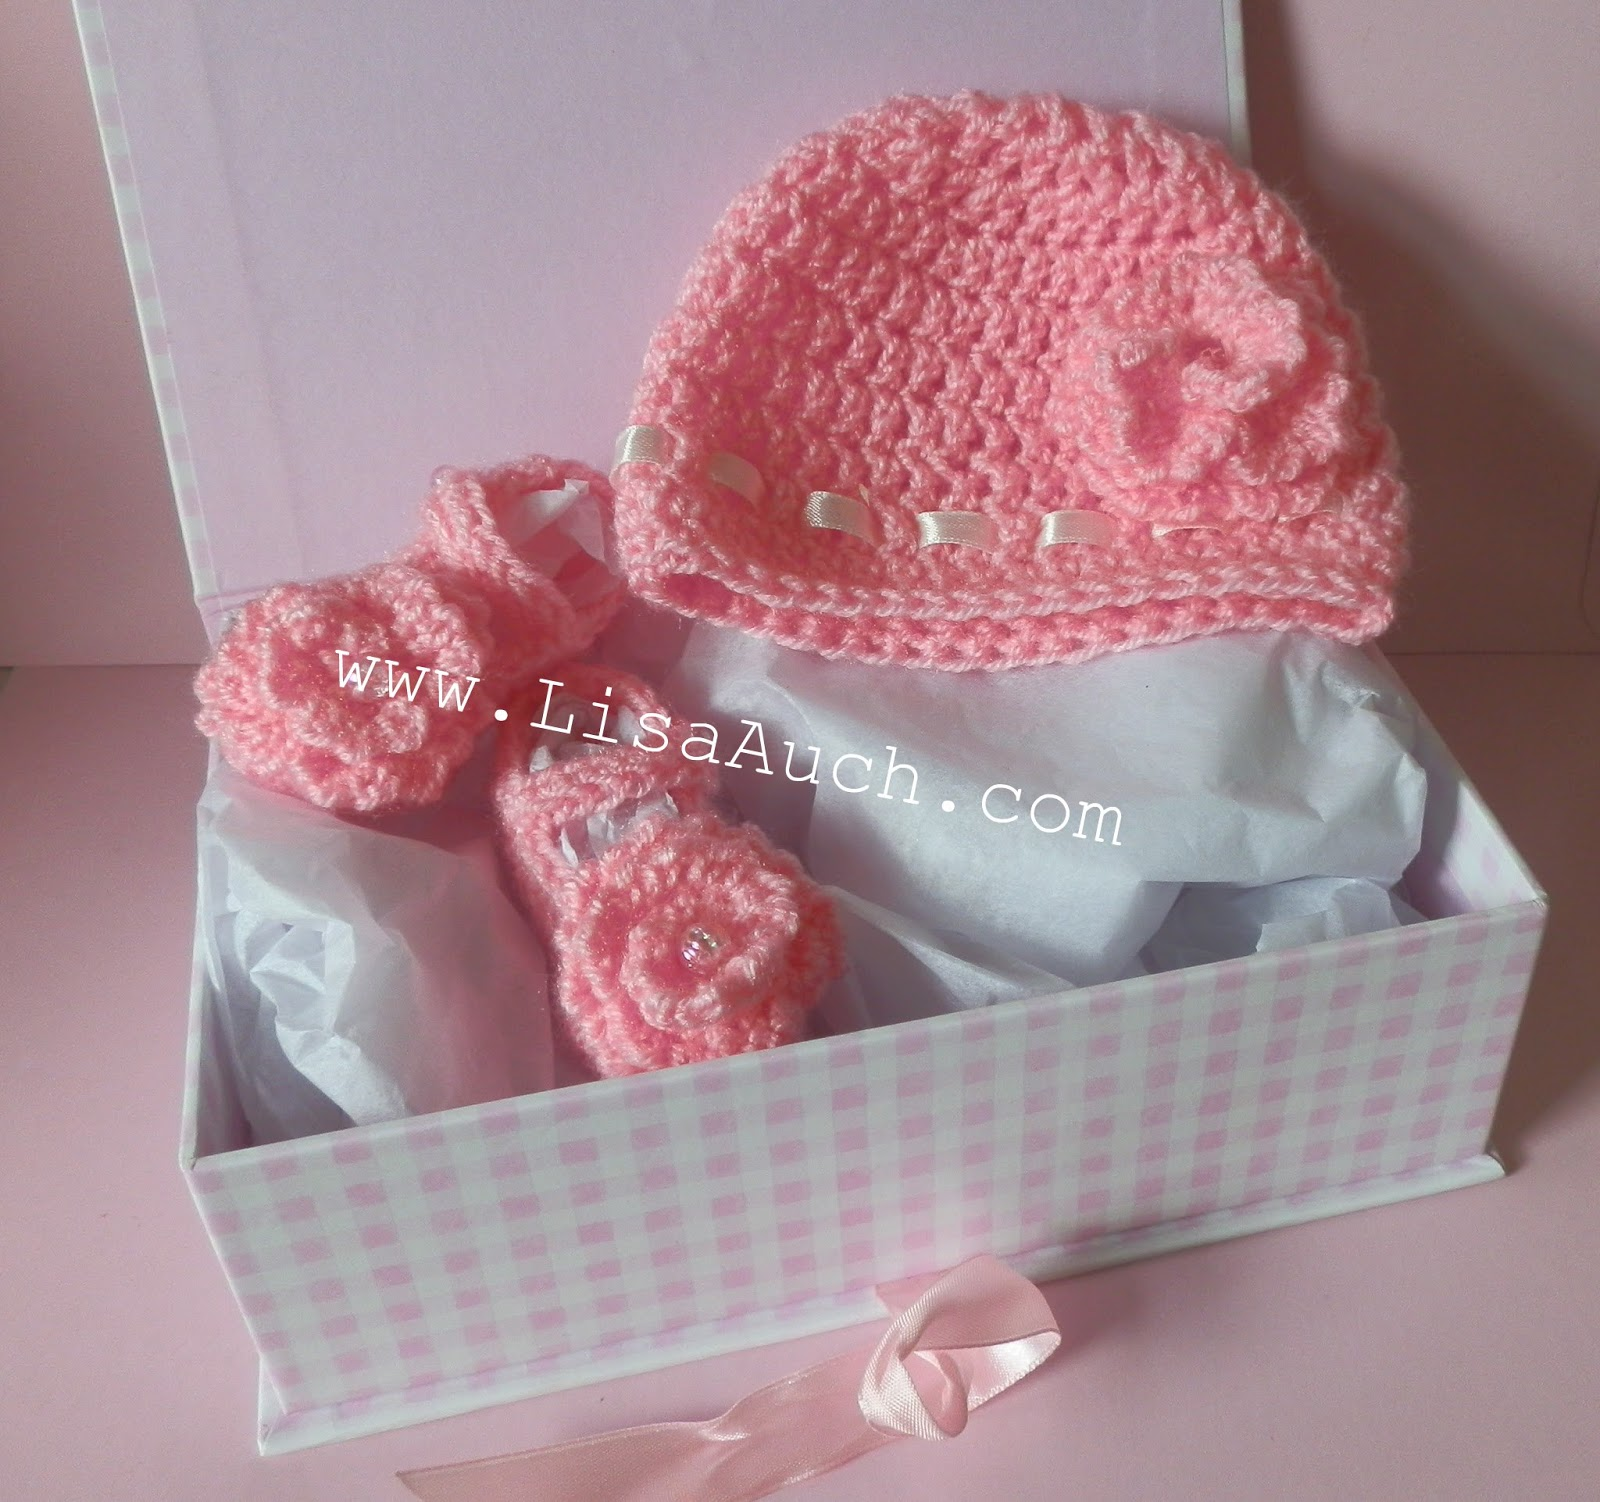 Crochet Patterns Baby Hats : FREE Crochet Patterns: Free Crochet Patterns for Baby Hat and Baby ...